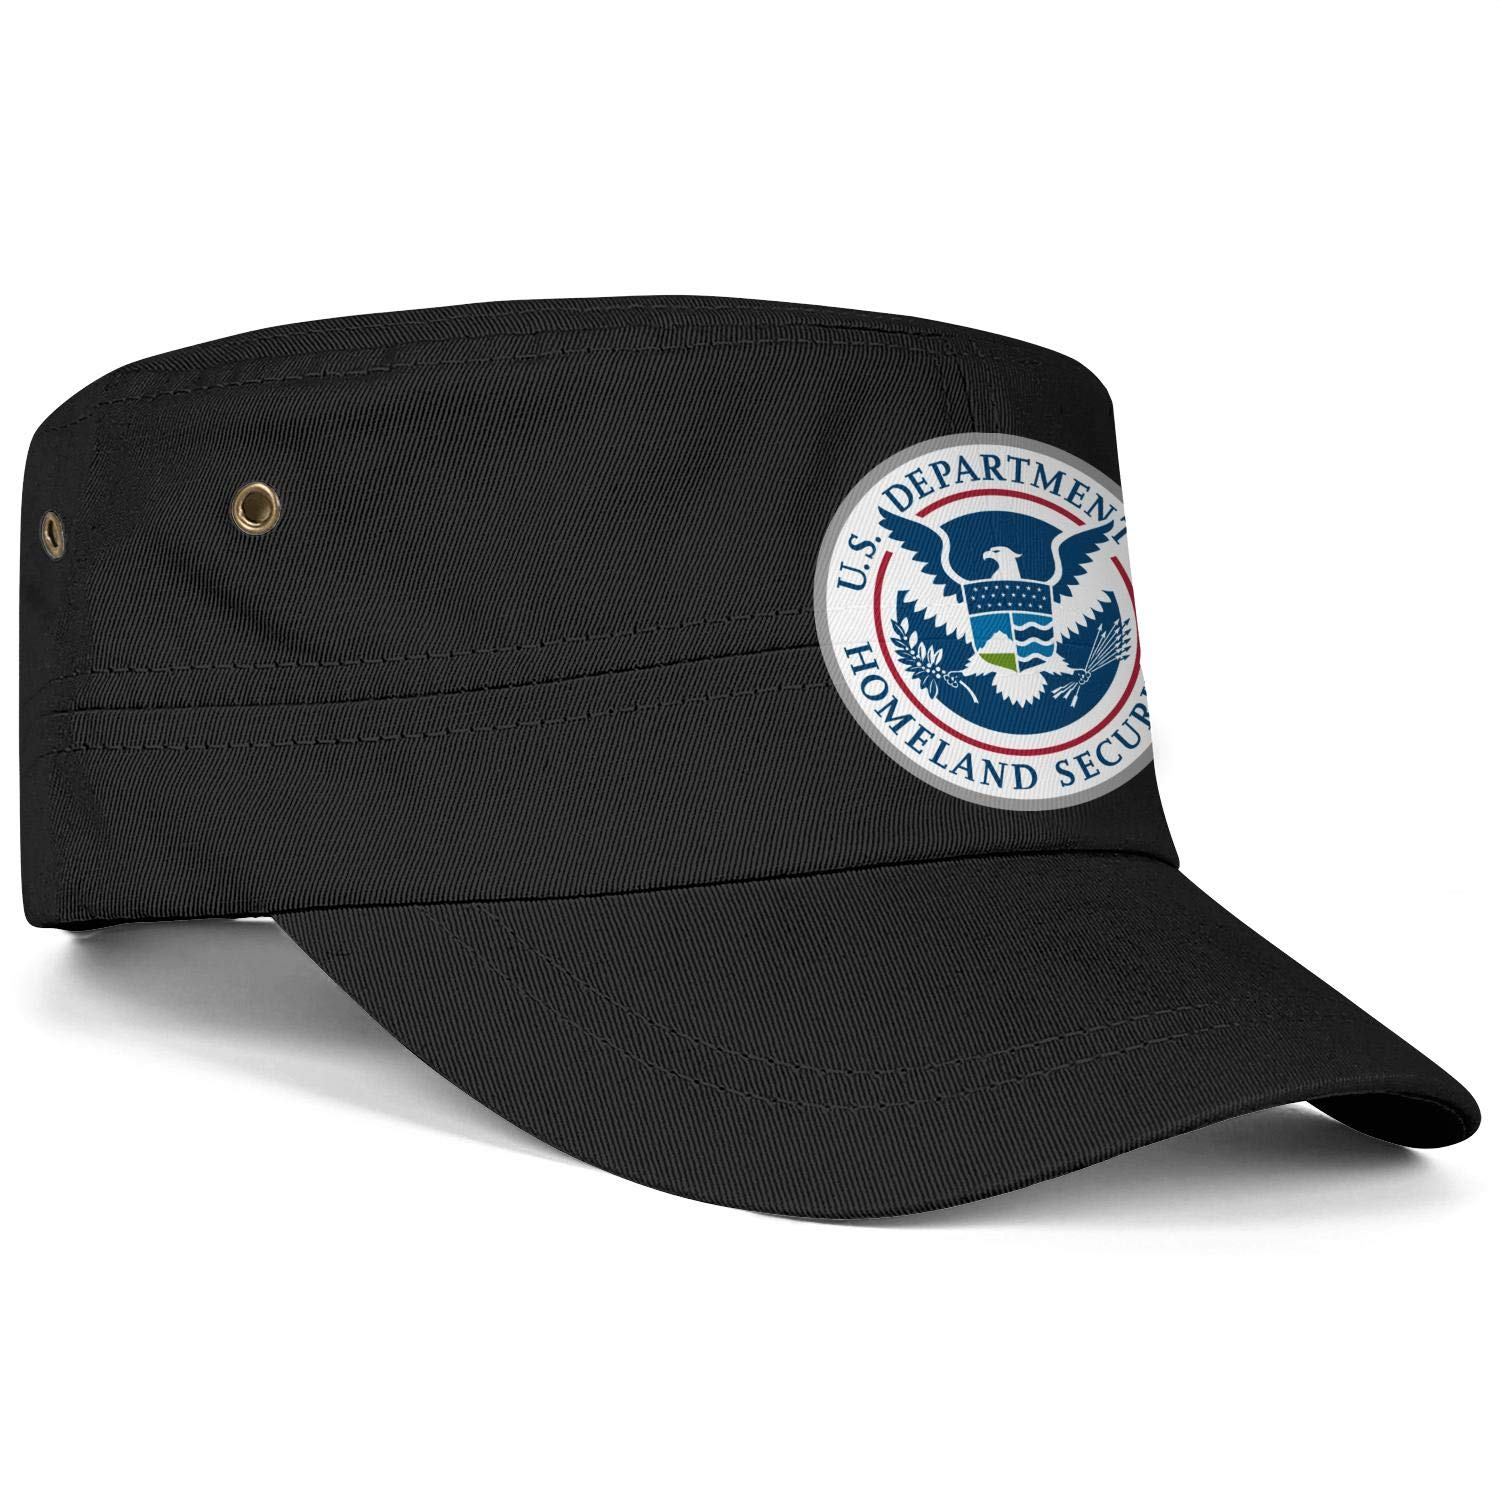 ZJING United States Department of Homeland Security Army Caps Flat Top Cadet Corps Hat Casual Trapper Hat